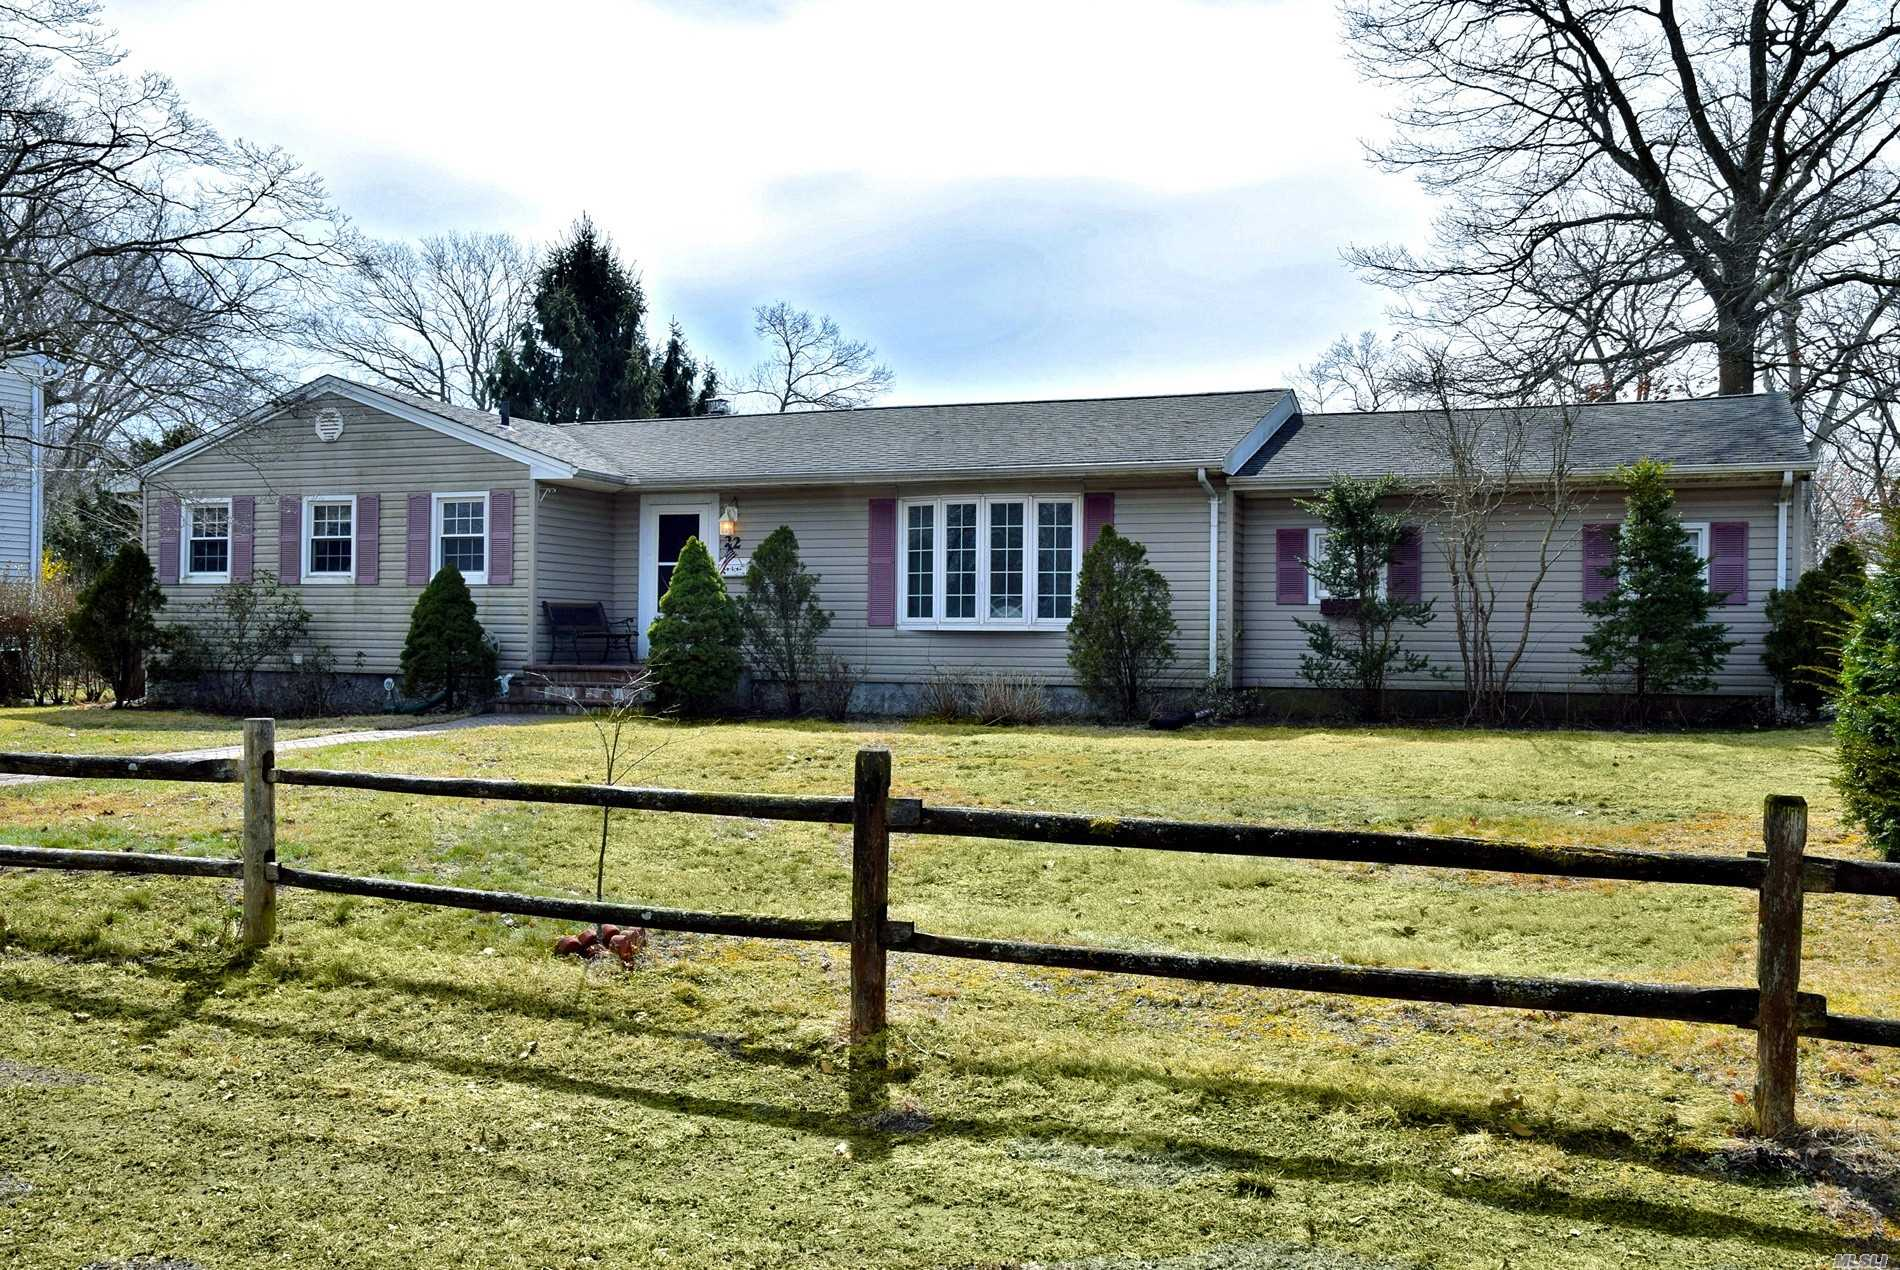 Great Home*Don't miss this opportunity*****Priced to sell Close to all. Shopping *LIRR- Nice corner property LR*DR*EIK* Master BR/w BTH *BR**Full Bth**BR**FULL BASEMENT*HALF BTH* ENDLESS POSSIBILITIES. TAXES*** without the star $7271 and with the star $6301